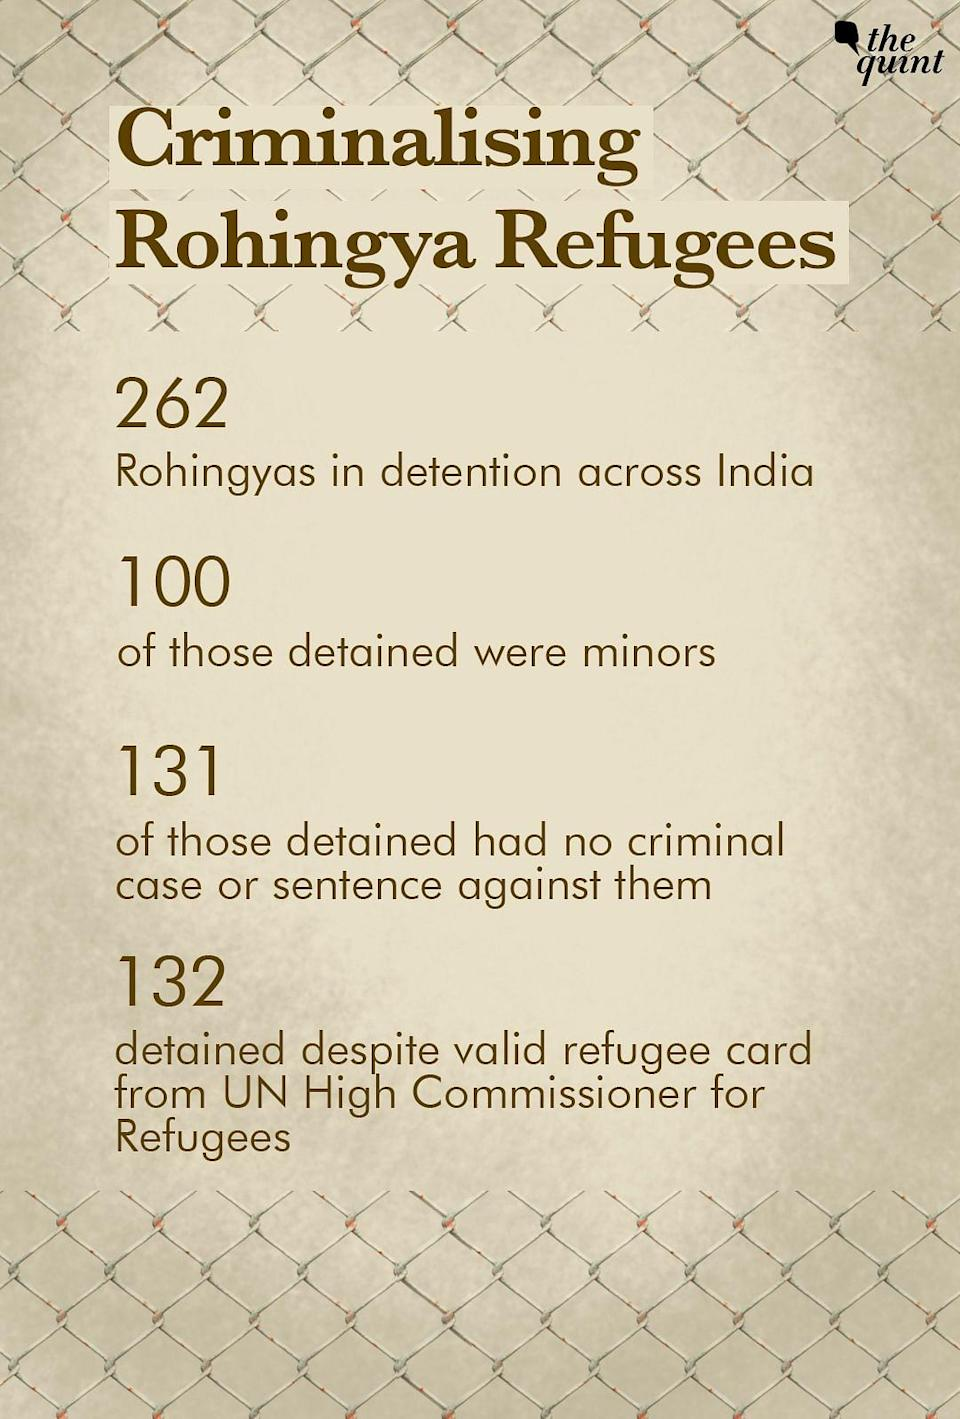 As per data collated from various sources, as of January 2020, a total of 262 Rohingya refugees were kept in detention centres